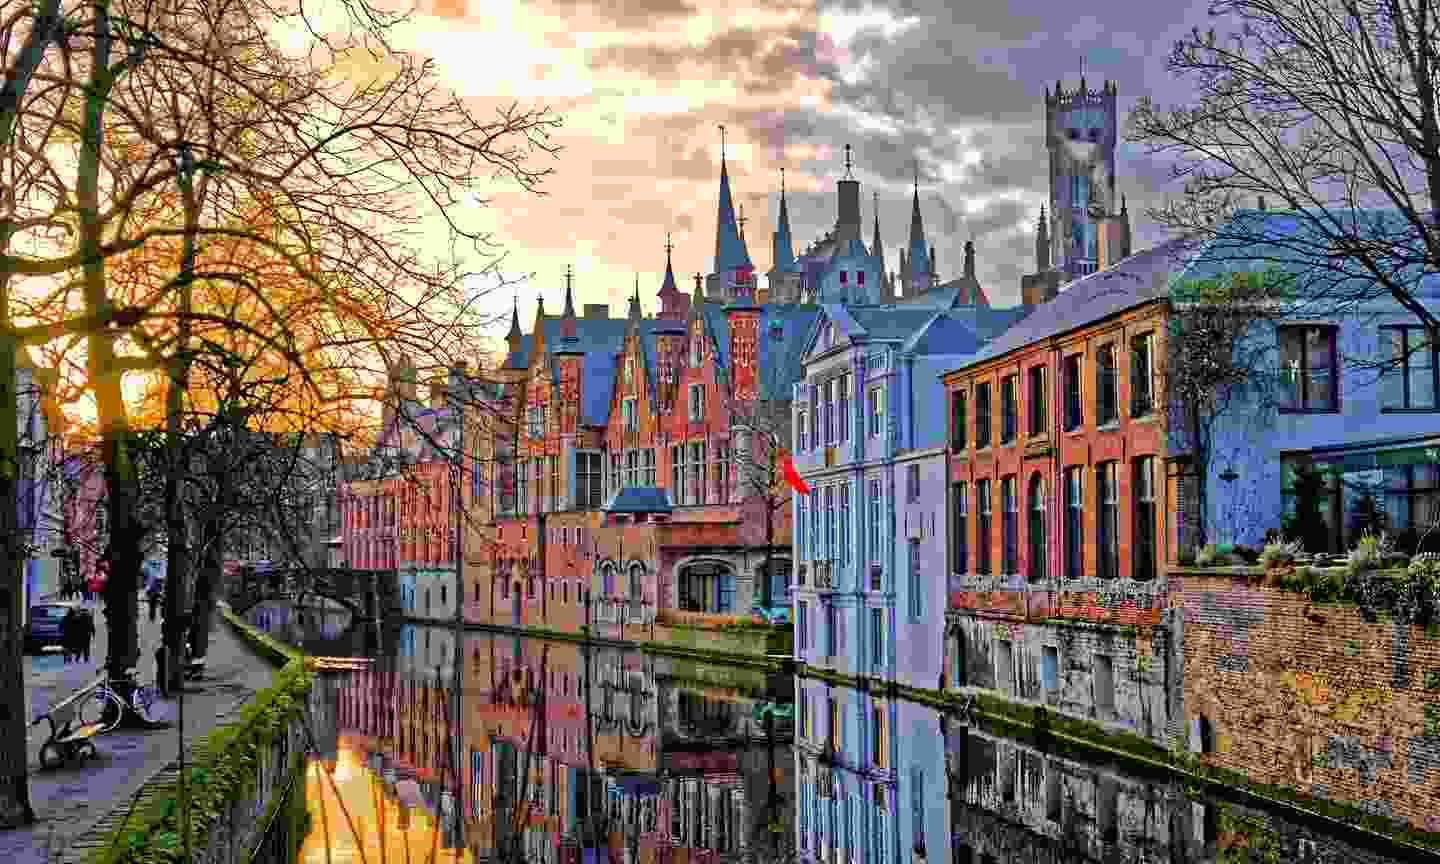 Bruges' canal during winter  (Shutterstock)